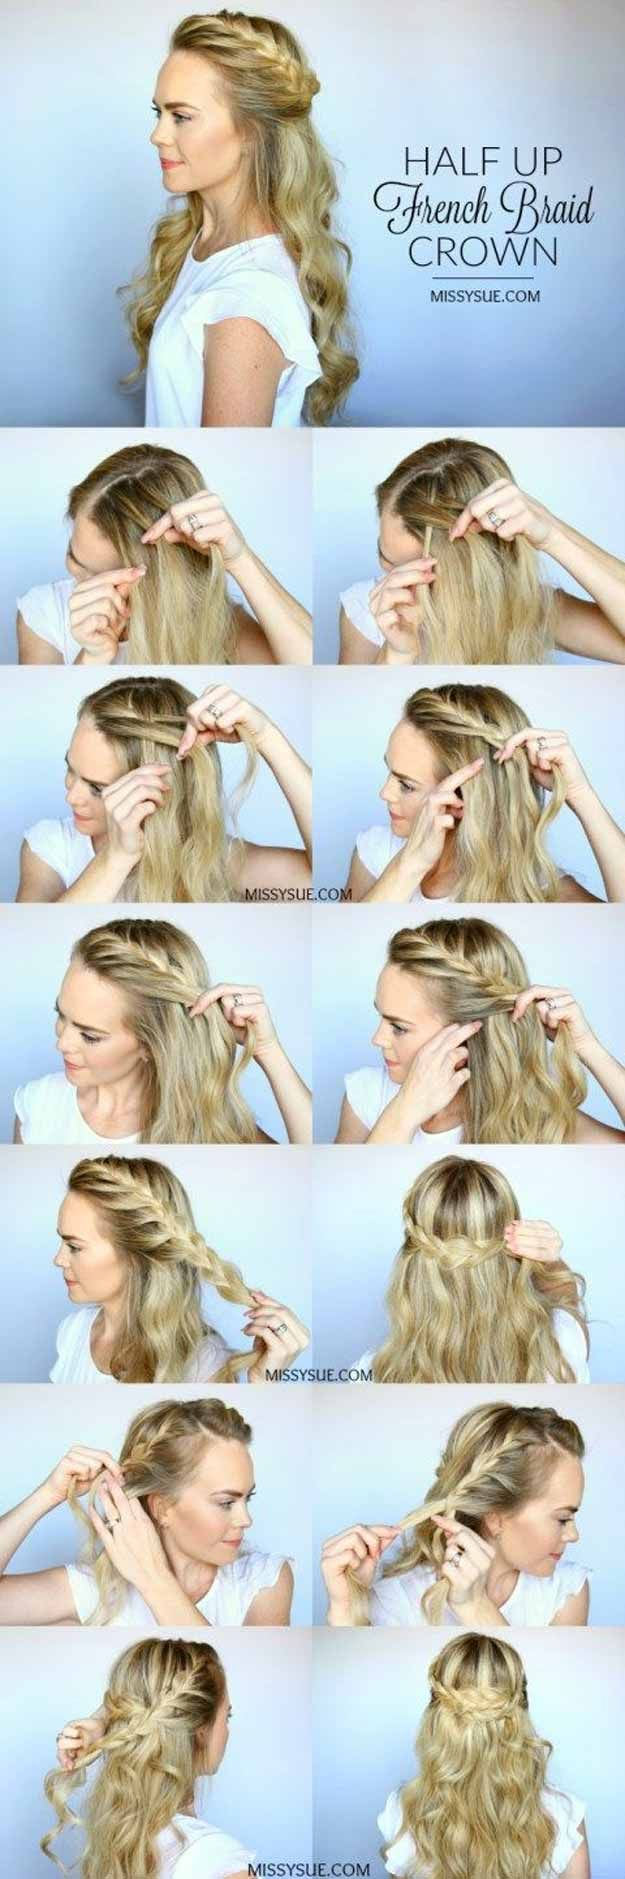 best pinterest hair tutorials pinterest hair braid crown and